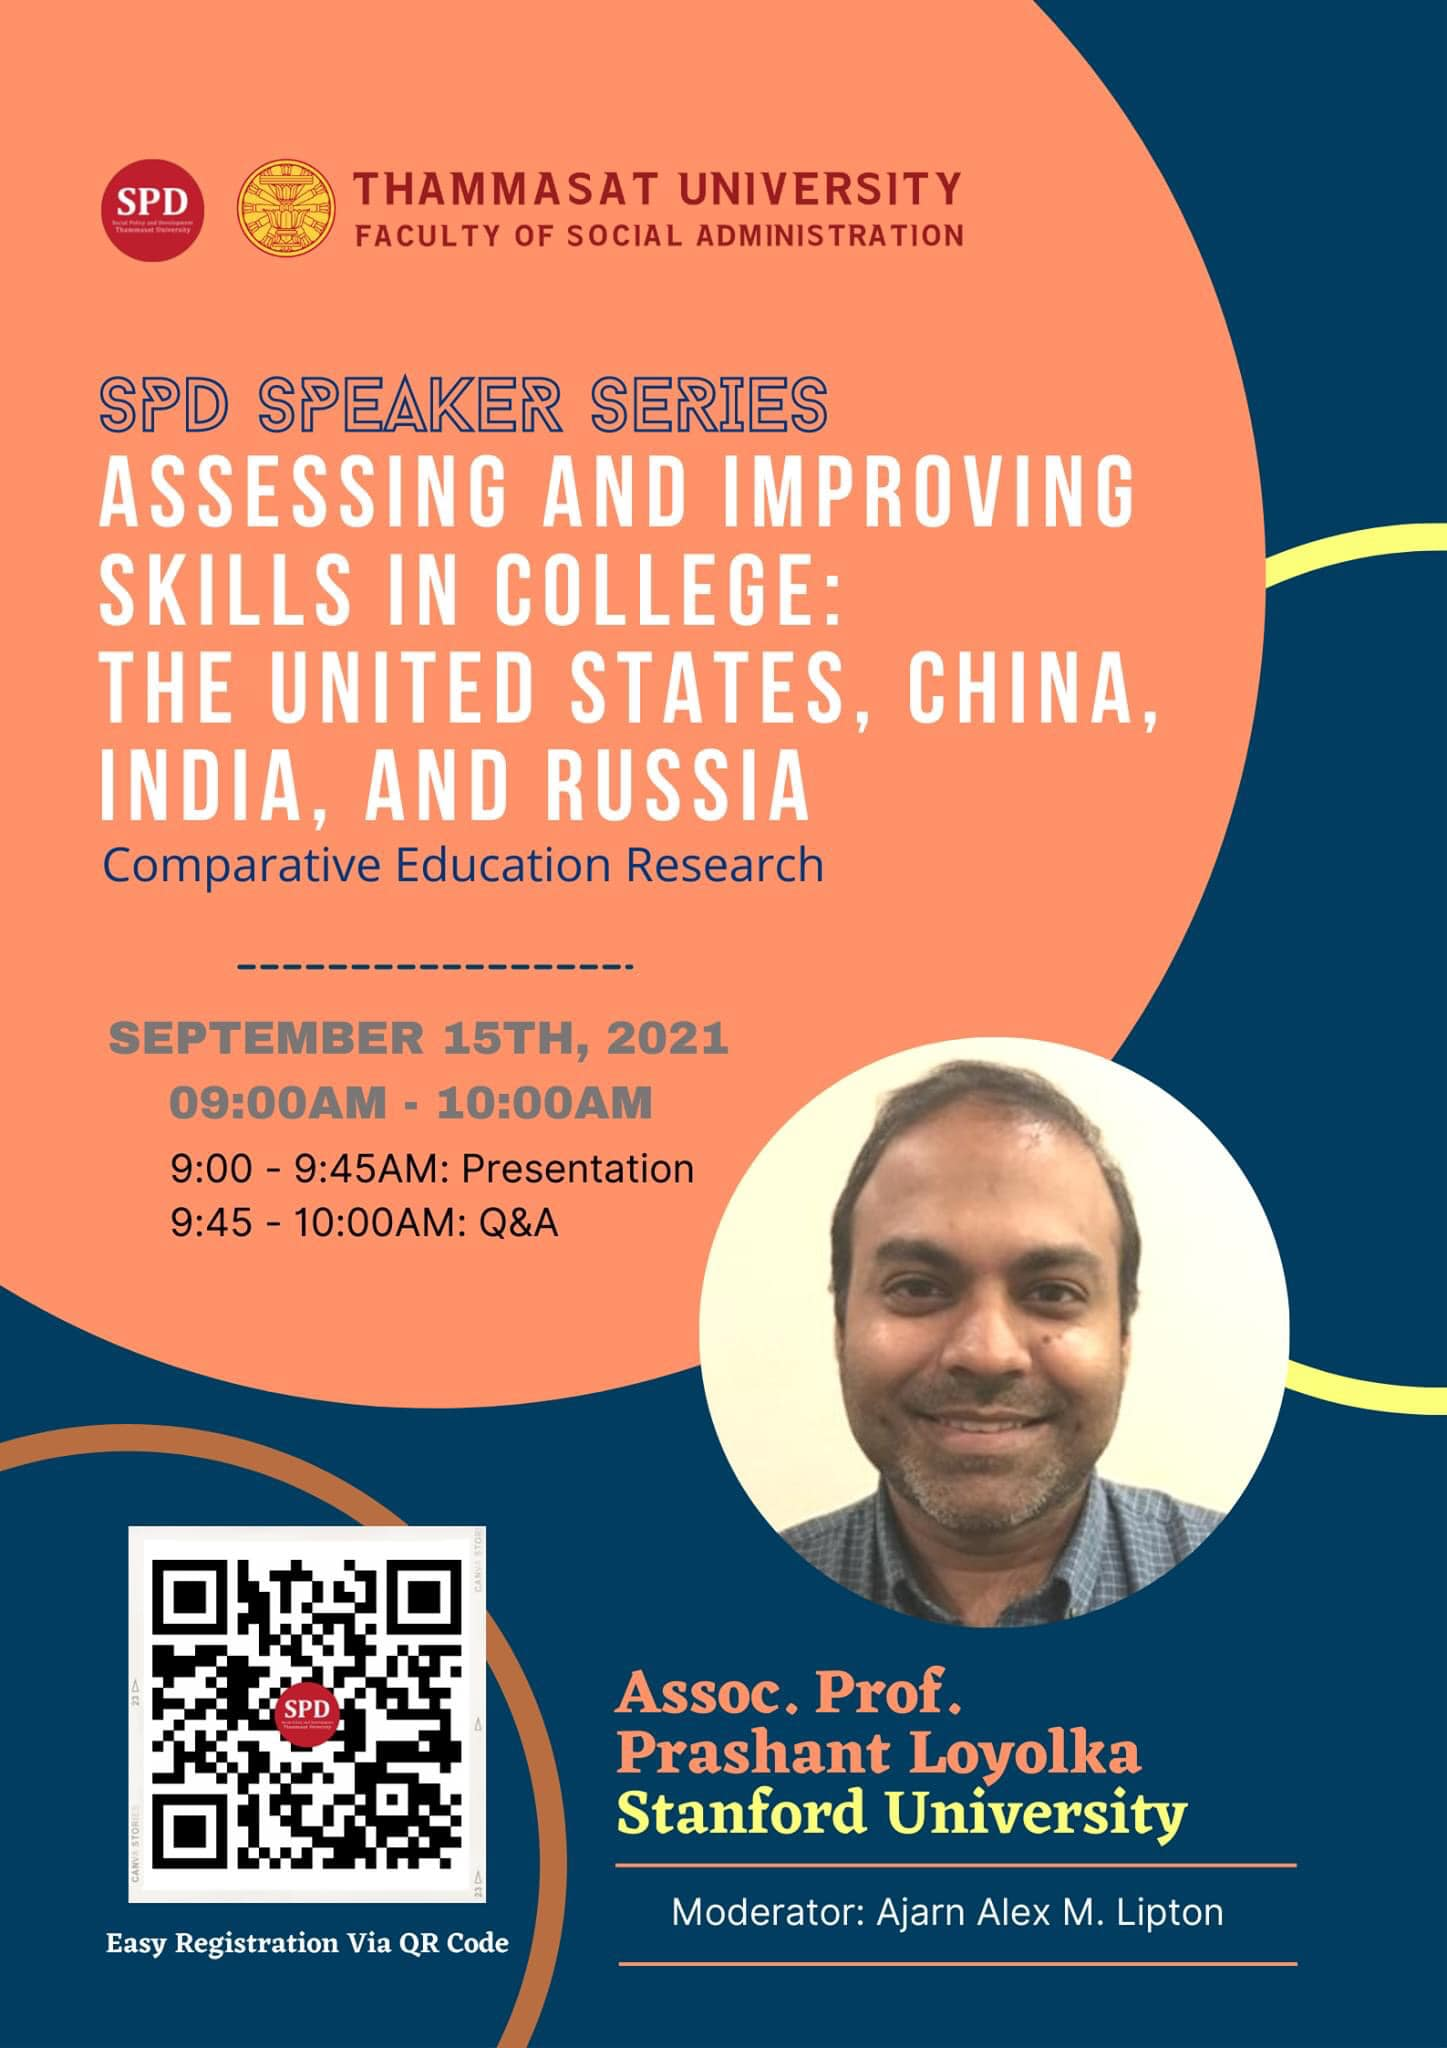 """SPD Speaker Series """"Assessing and Improving Skills in College: The United States, China, India and Russia"""""""